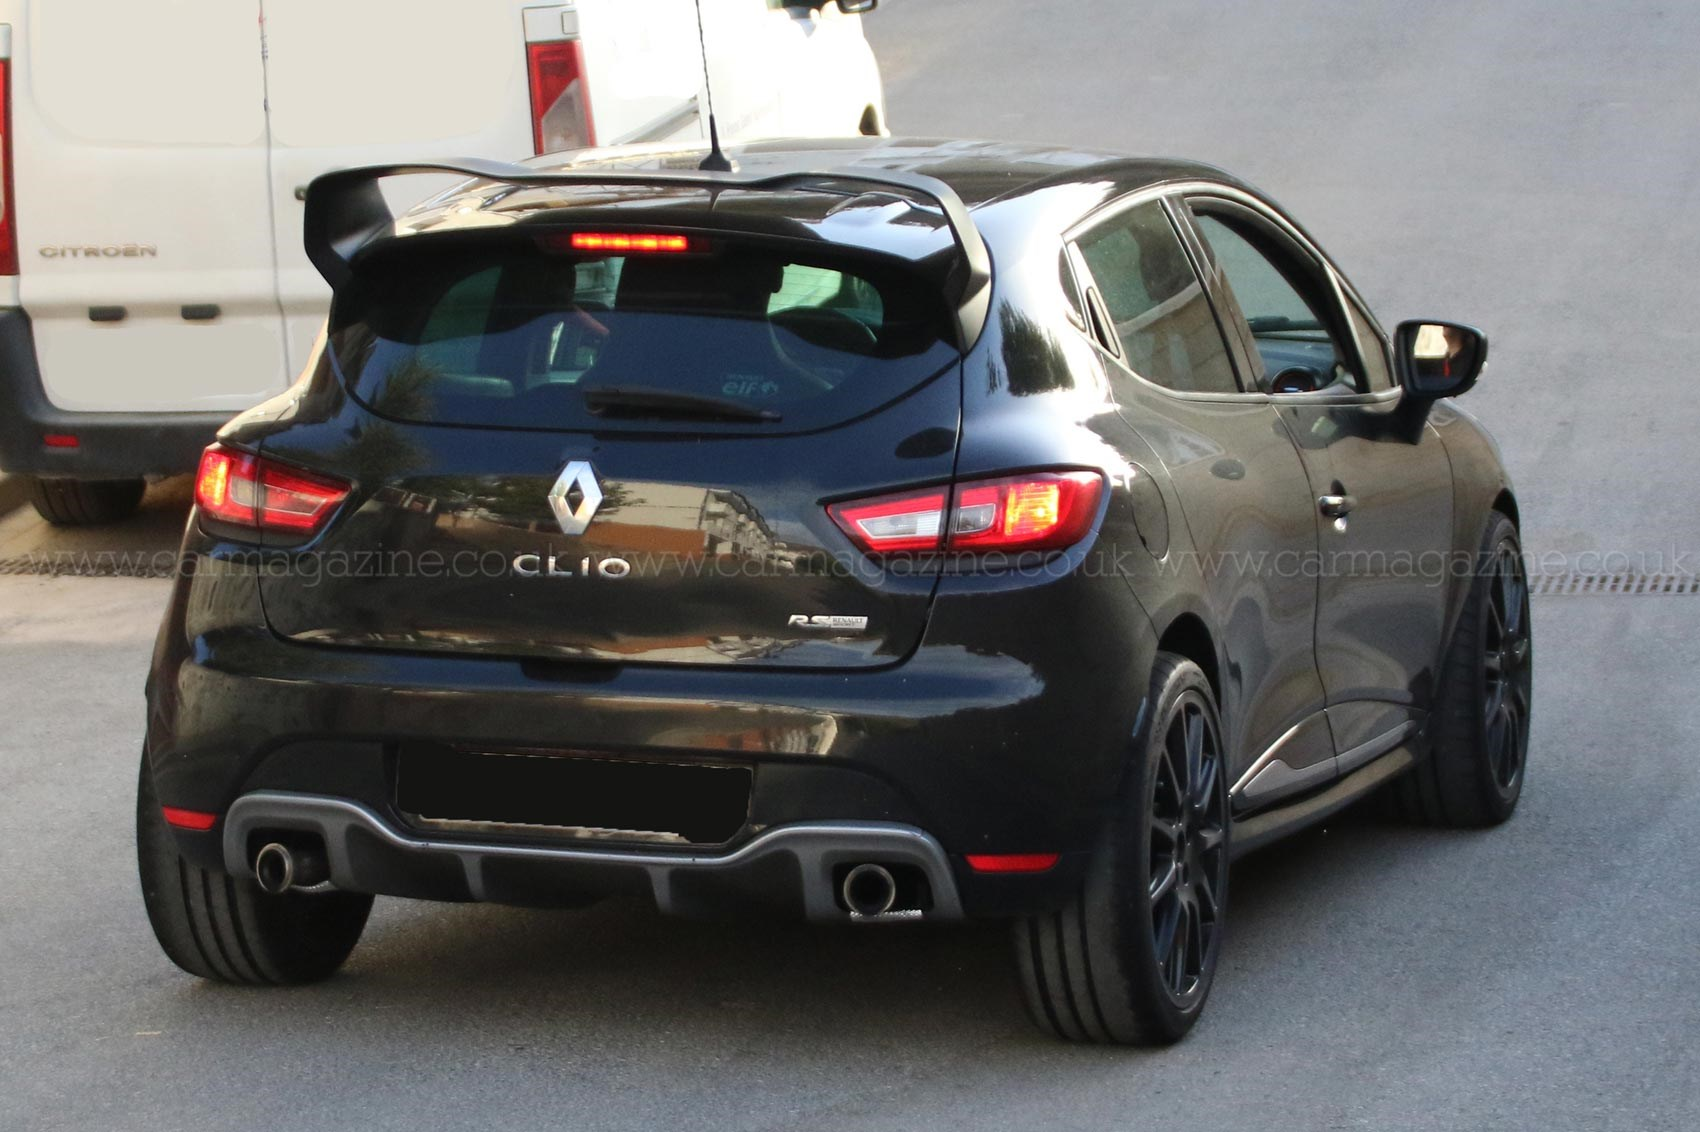 spyshots de la renault clio rs 16 production en vue plan te. Black Bedroom Furniture Sets. Home Design Ideas